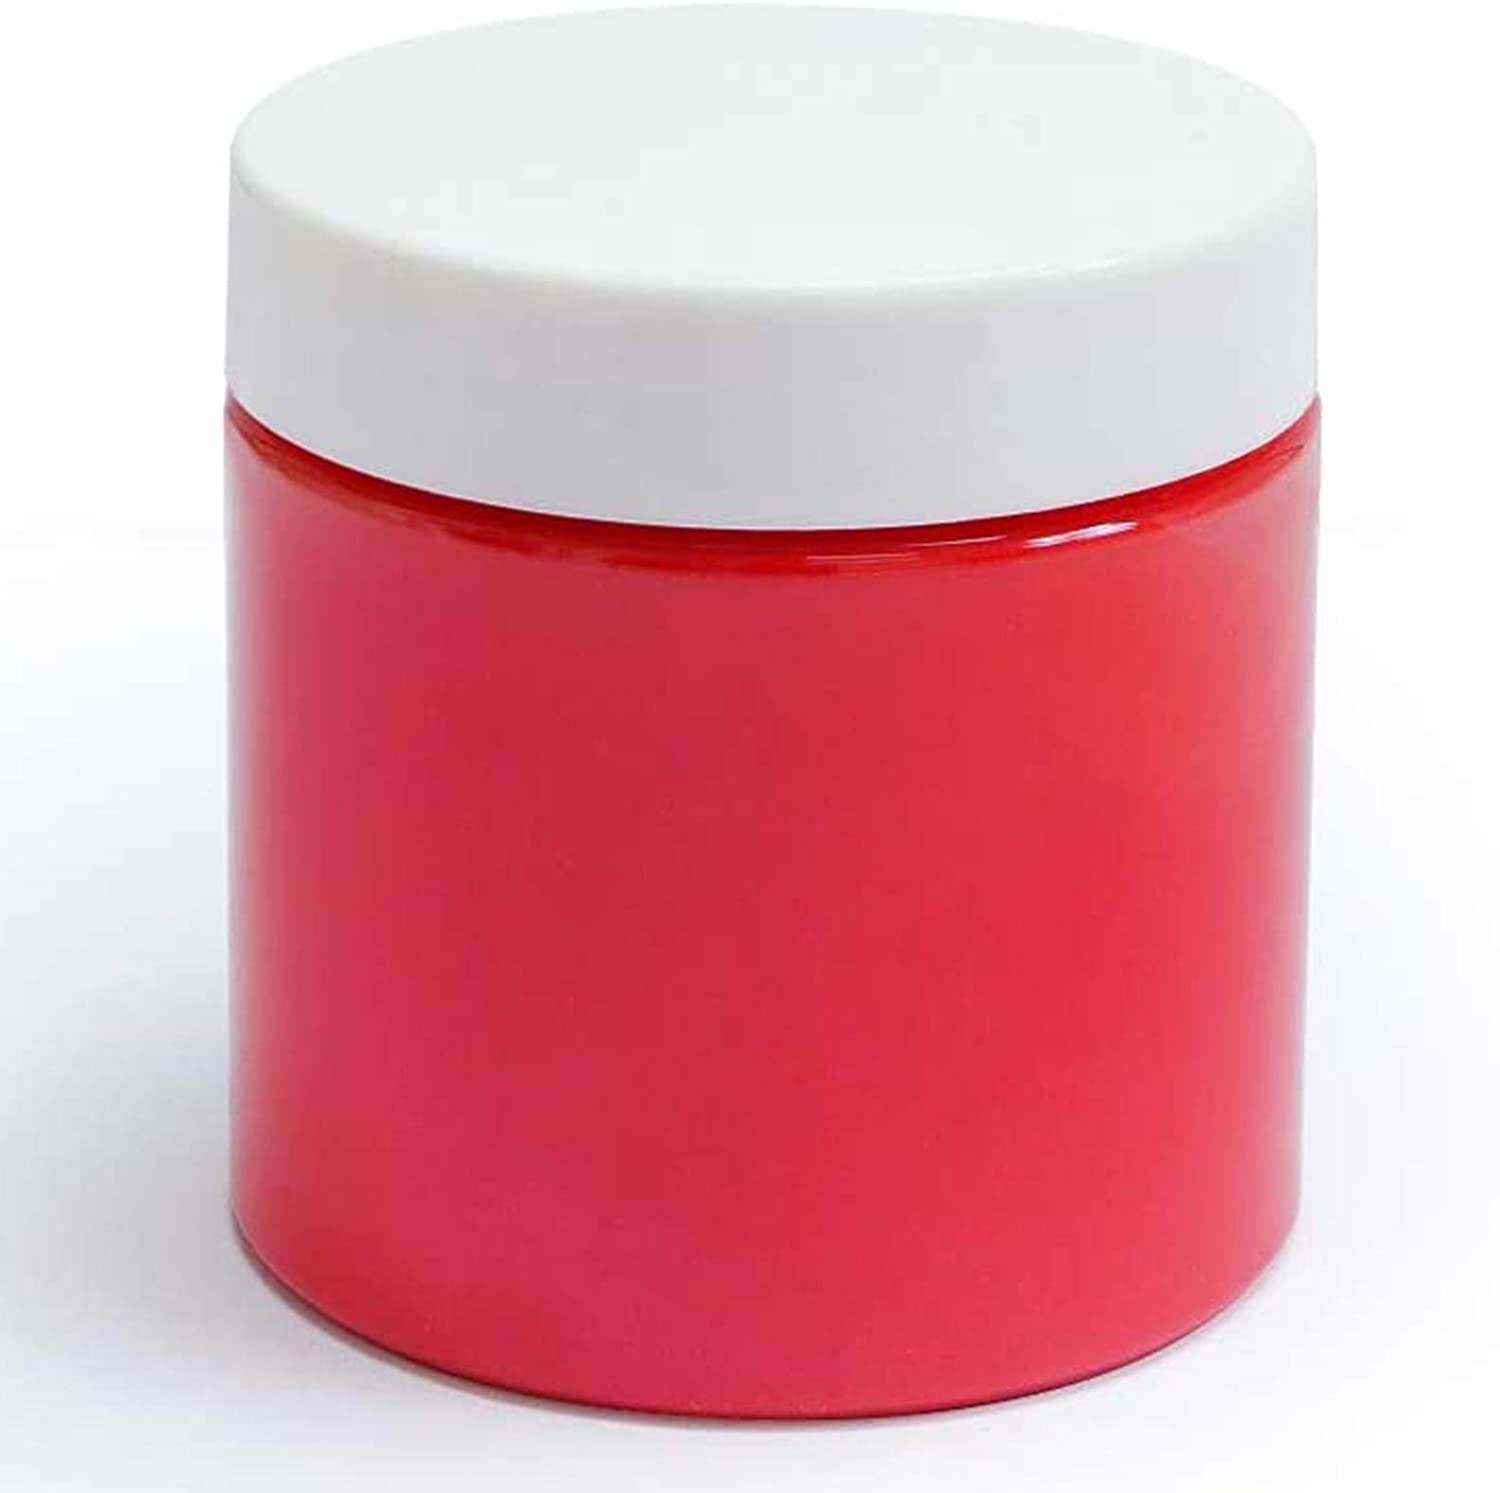 Red Mica Powder Pigments Dye for Lip Gloss, Soap Making, Epoxy Resin Dye, Powdered Pigments for Bath Bombs, Candle Making, Nail Art (100g/3.53oz)